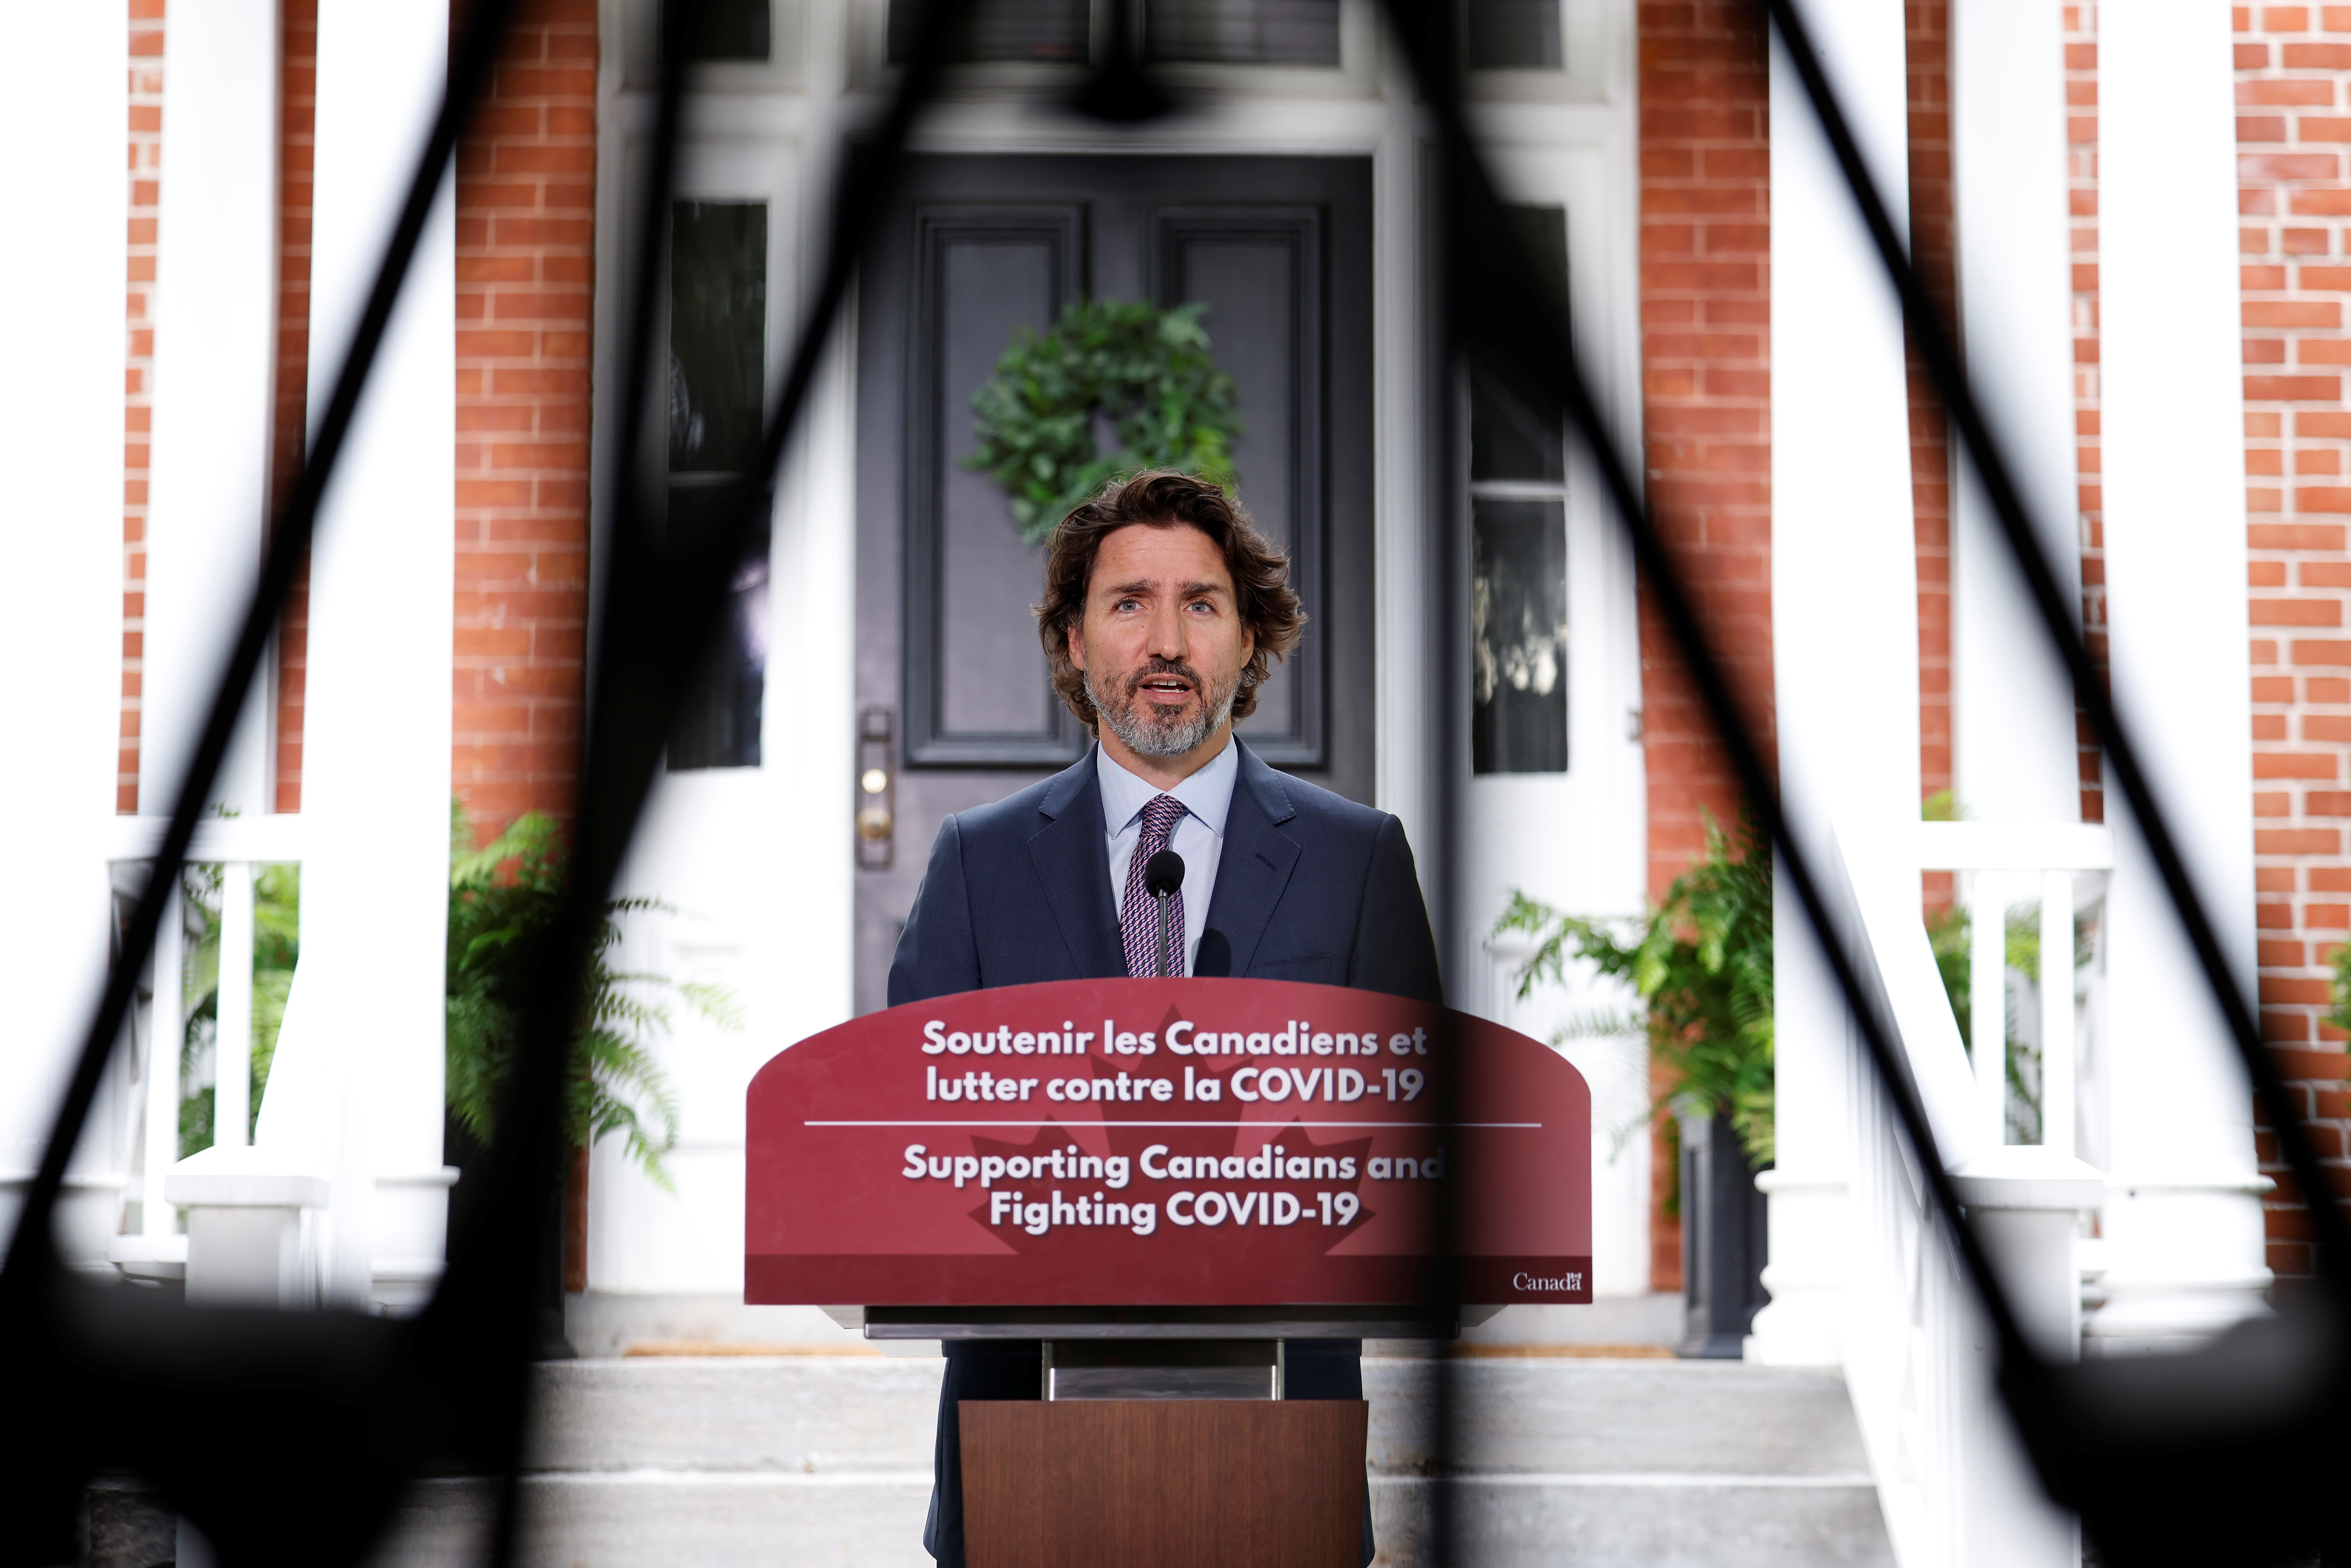 Canada's Prime Minister Justin Trudeau attends a news conference at Rideau Cottage during which, amongst other topics, he spoke about unmarked graves found recently, as efforts continue to help slow the spread of the coronavirus disease (COVID-19), in Ottawa, Ontario, Canada June 25, 2021. REUTERS/Blair Gable